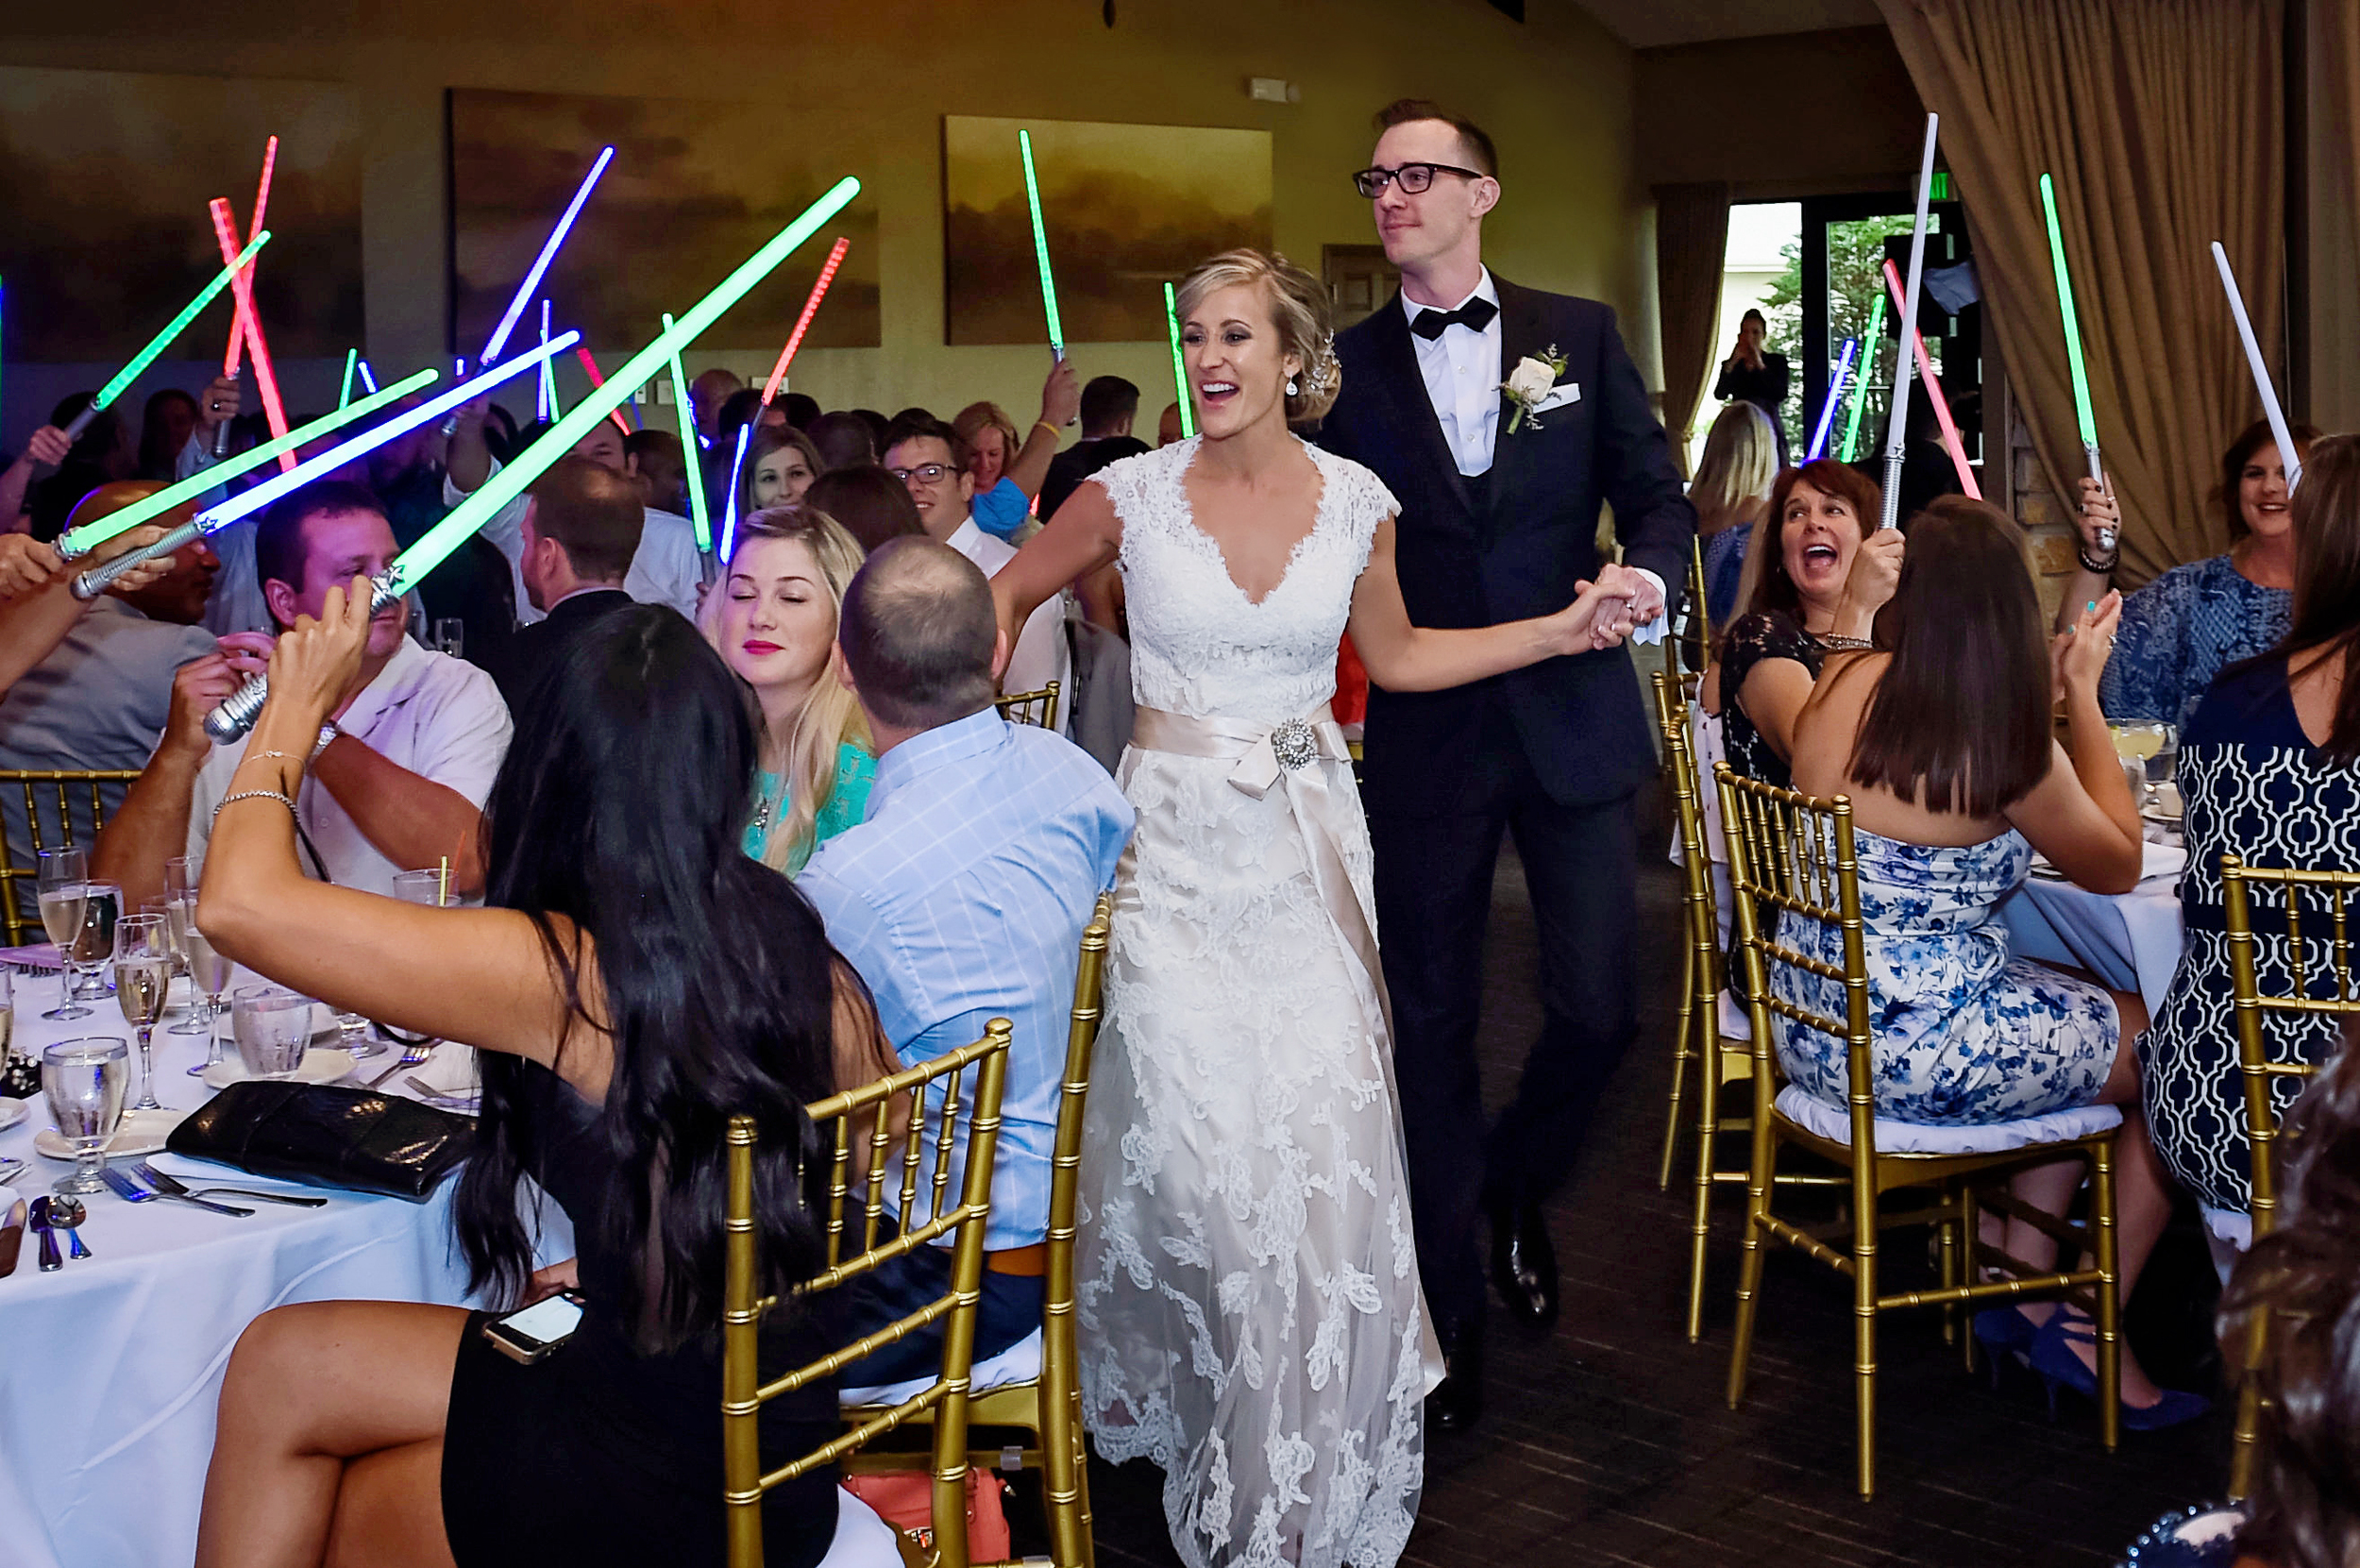 Adam and Erica made their entrance as Mr. & Mrs. to a Jedi worthy salute.